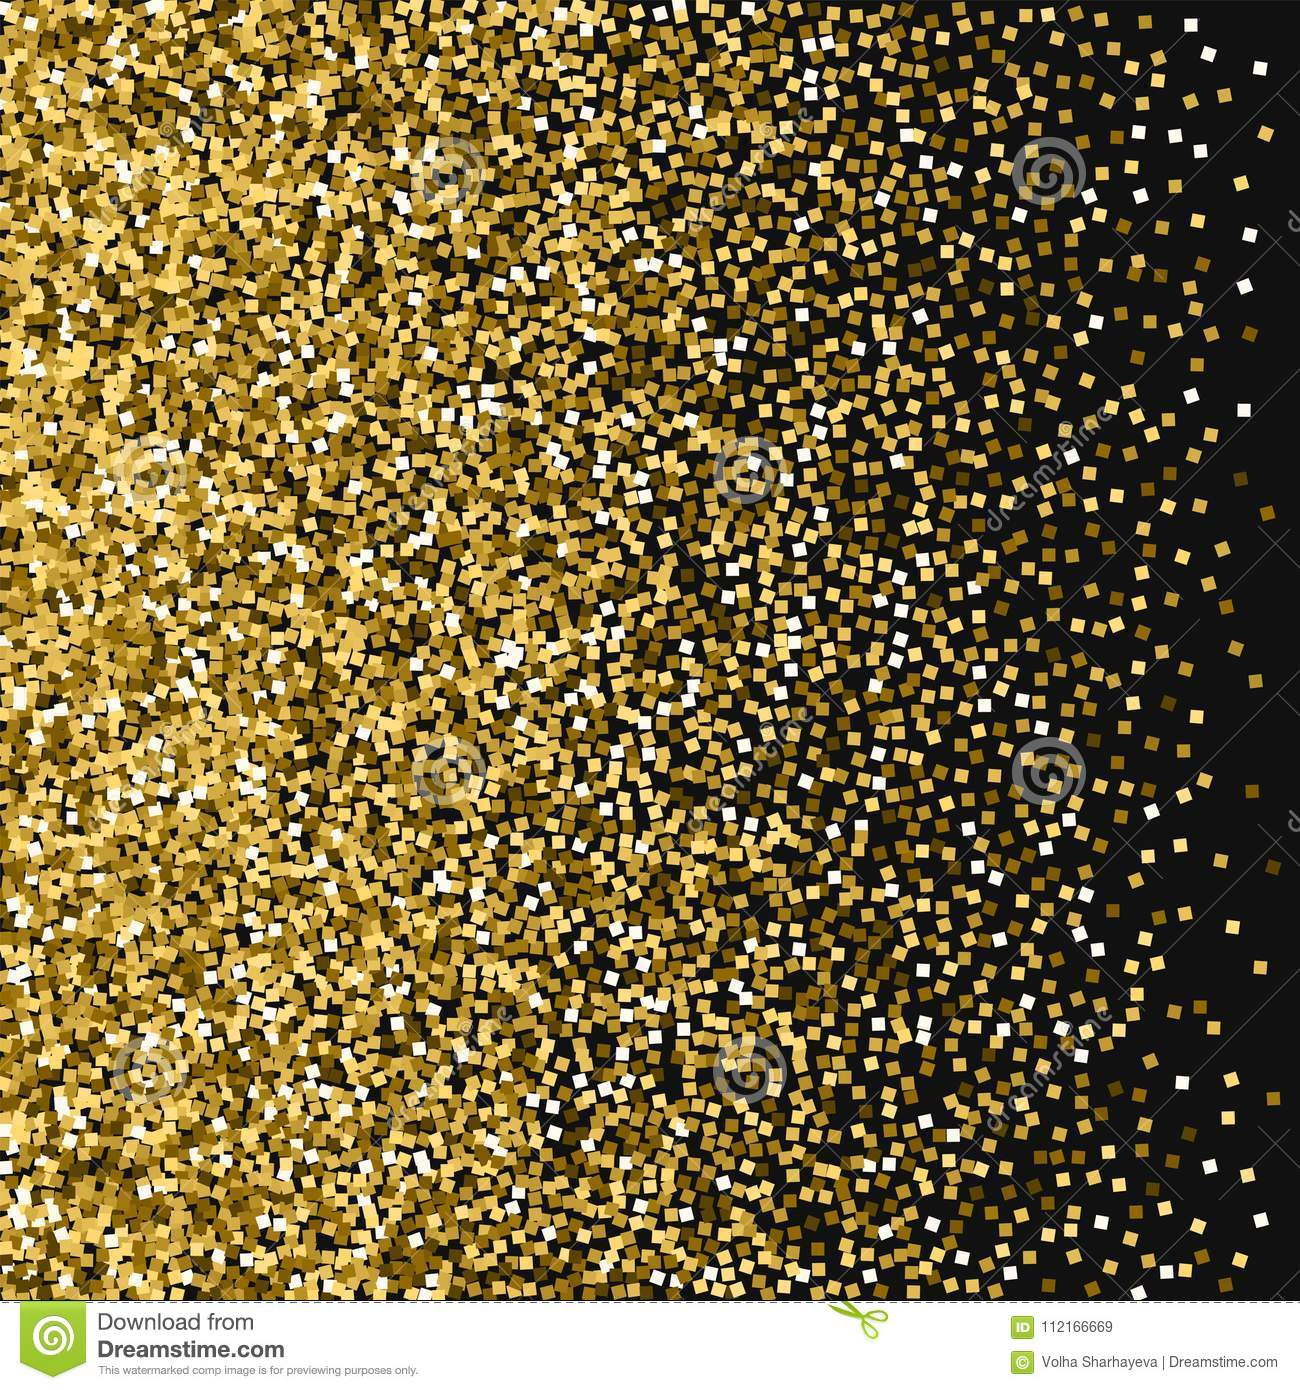 ba95a64e8ba Left gradient with gold glitter on black background. Majestic Vector  illustration.